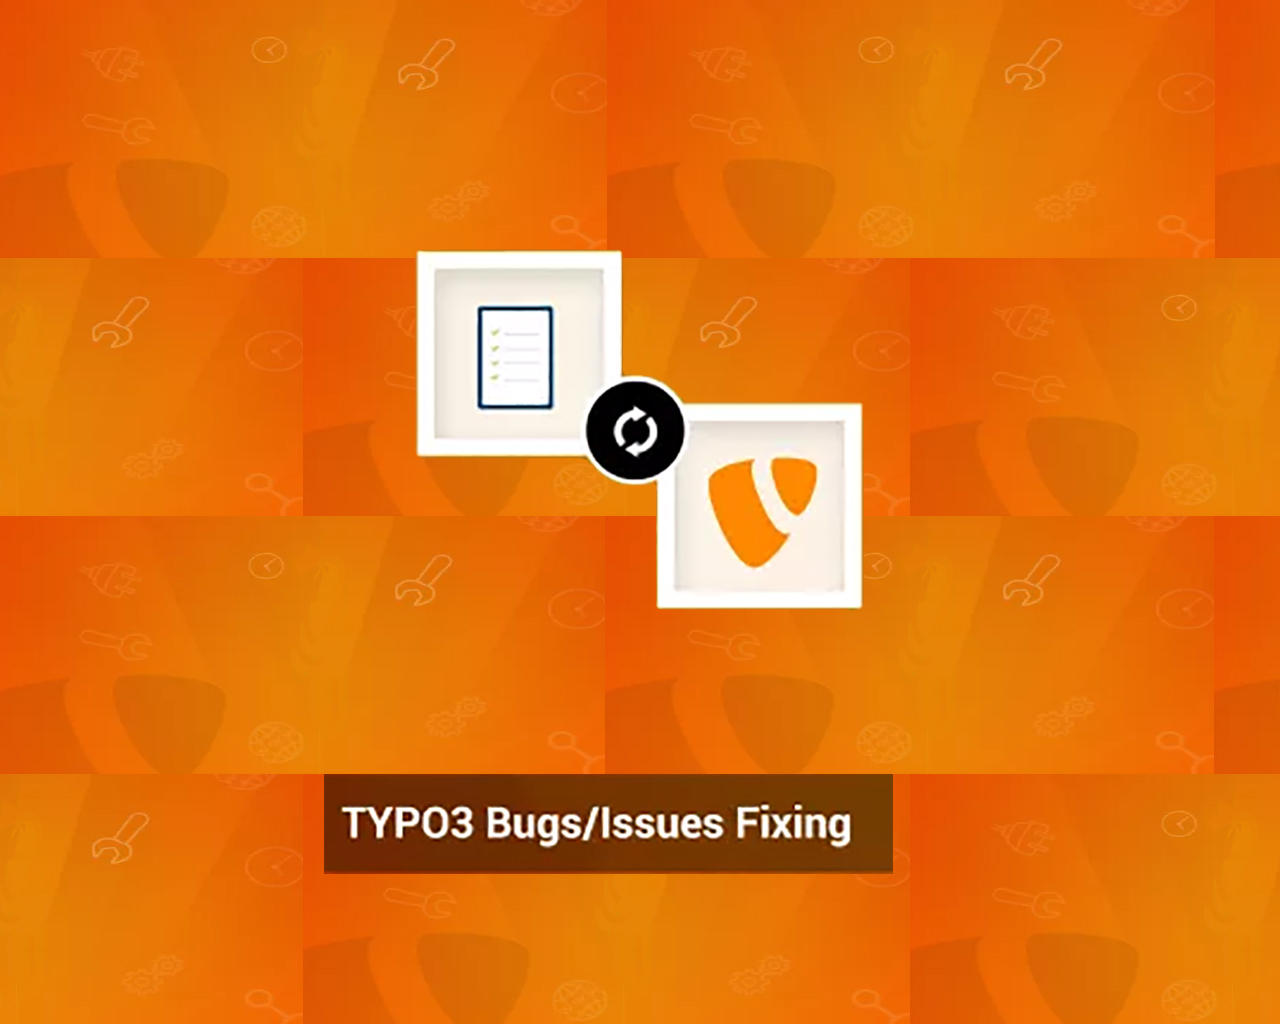 Quickly Fix Any Typo3 Errors, Bugs or Issues by ZivDesign - 109499